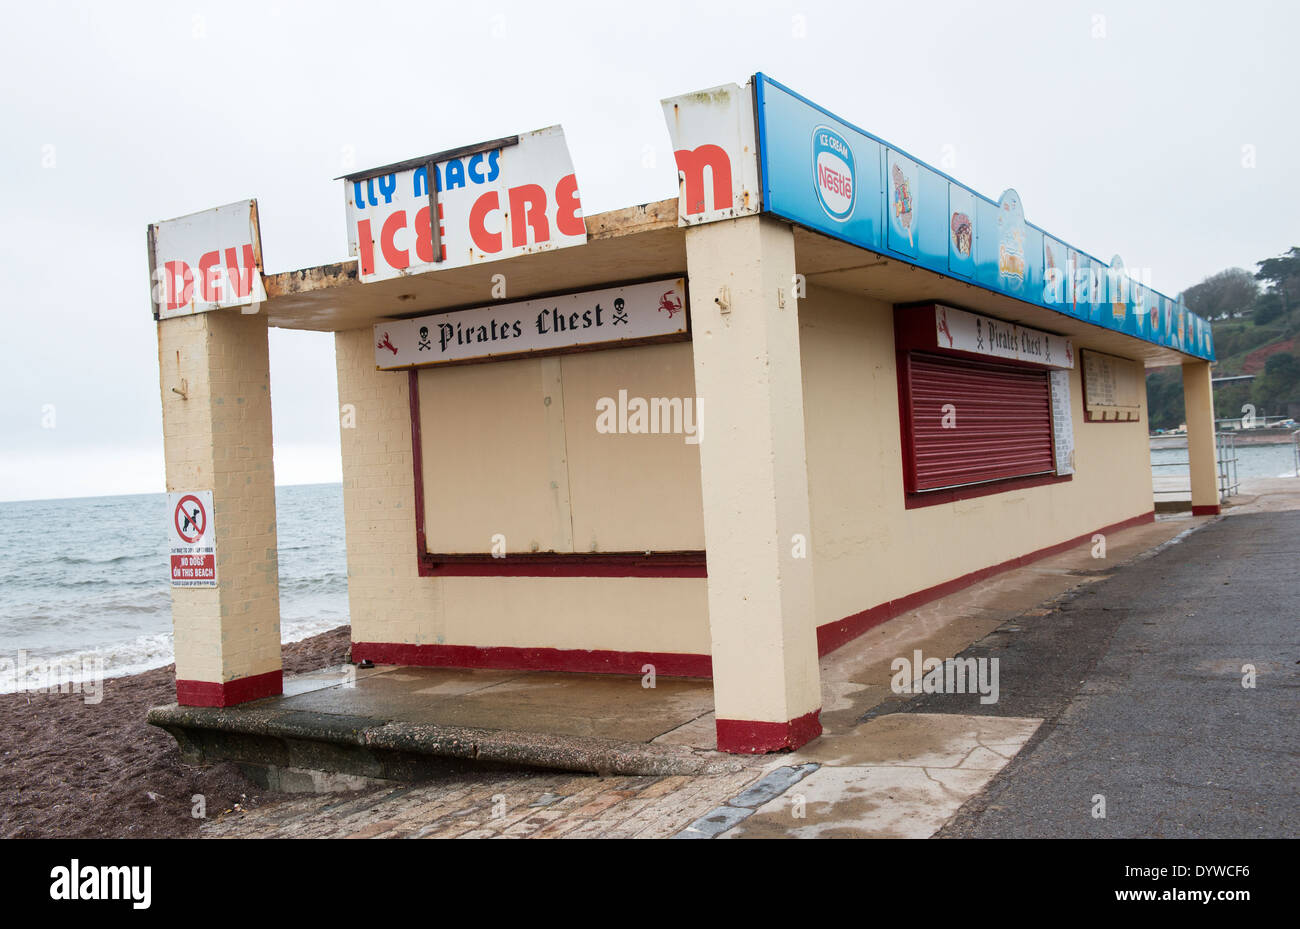 Pirates Chest seafront cafe closed for the winter in Dawlish, Devon - Stock Image